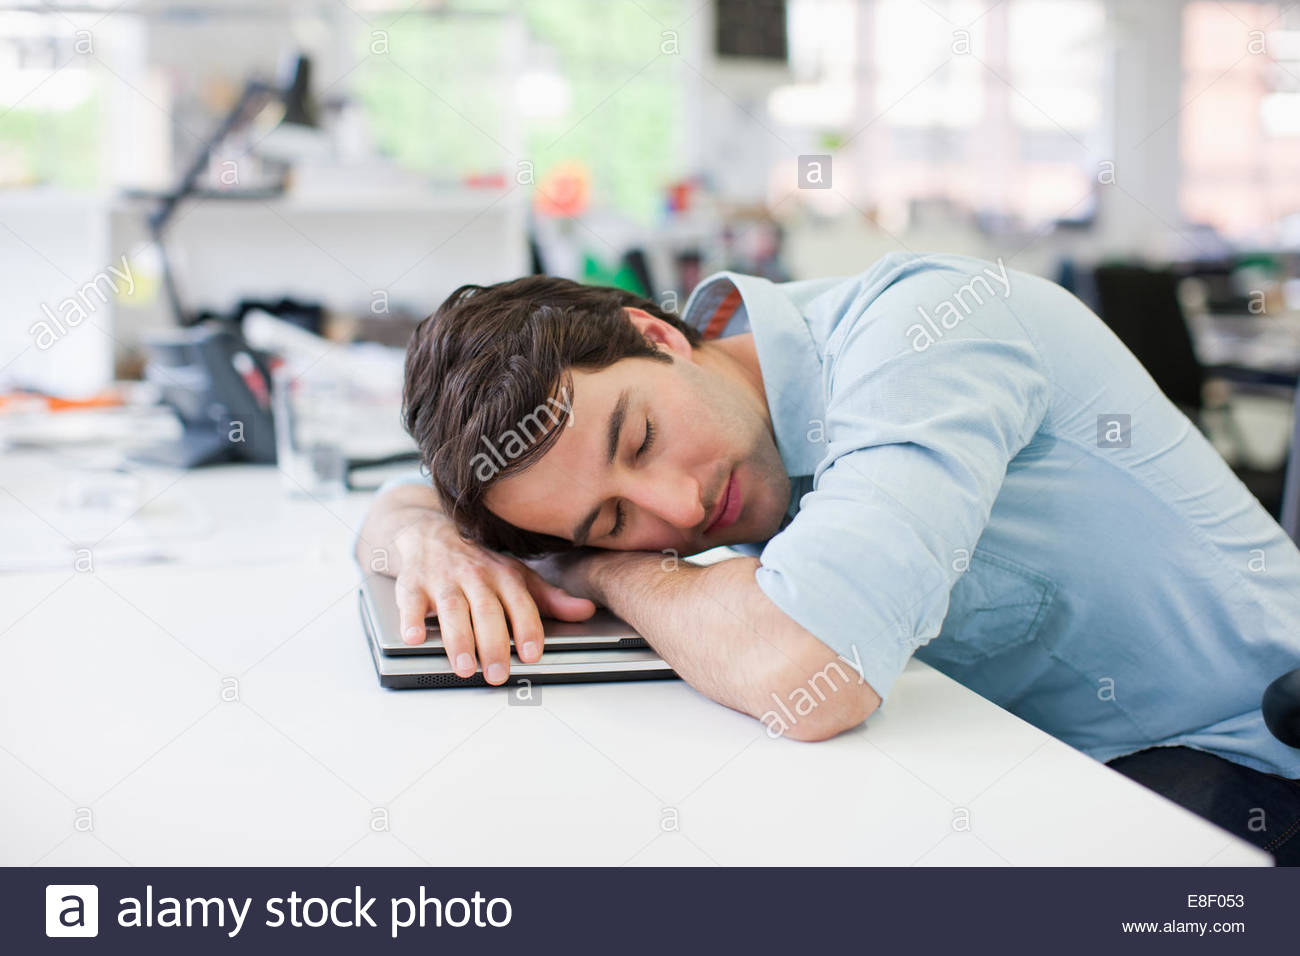 Businessman sleeping on laptop at desk in office - Stock Image